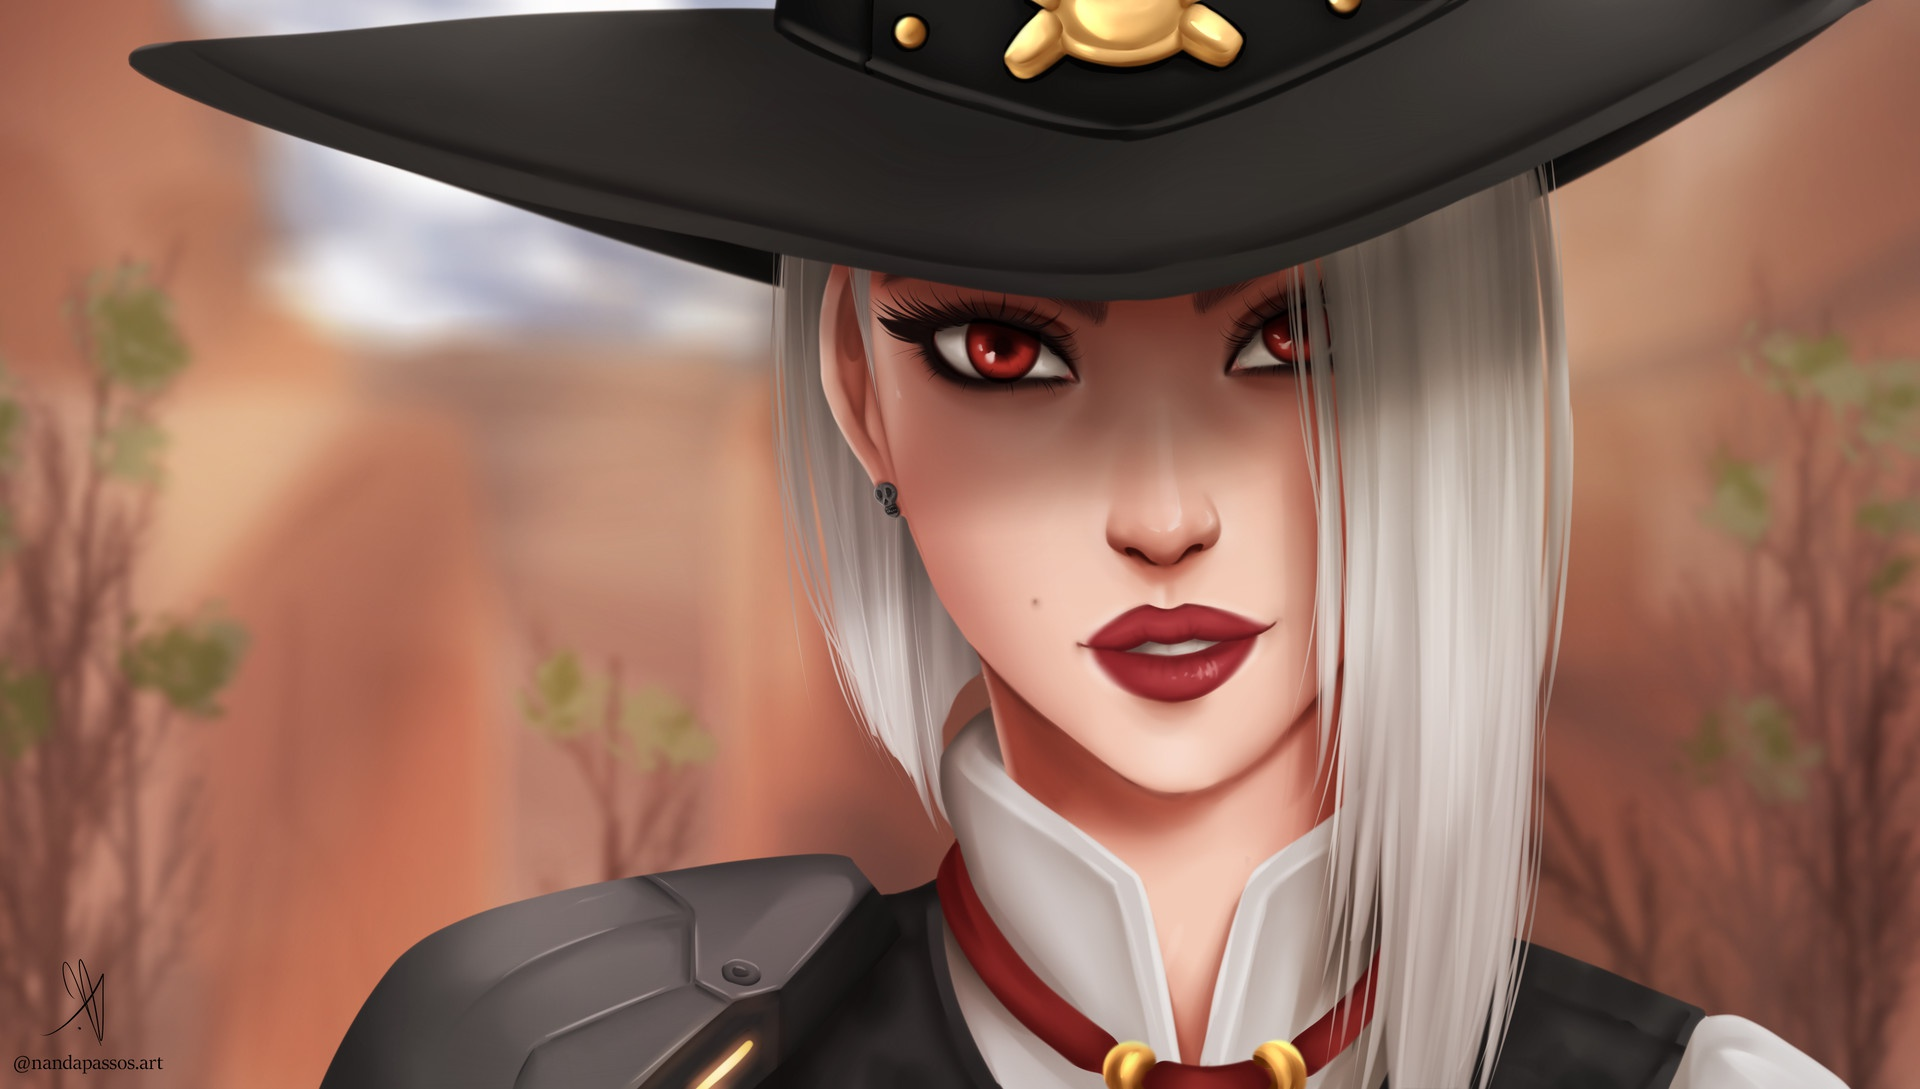 Ashe Overwatch Girl, HD Games, 4k Wallpapers, Images